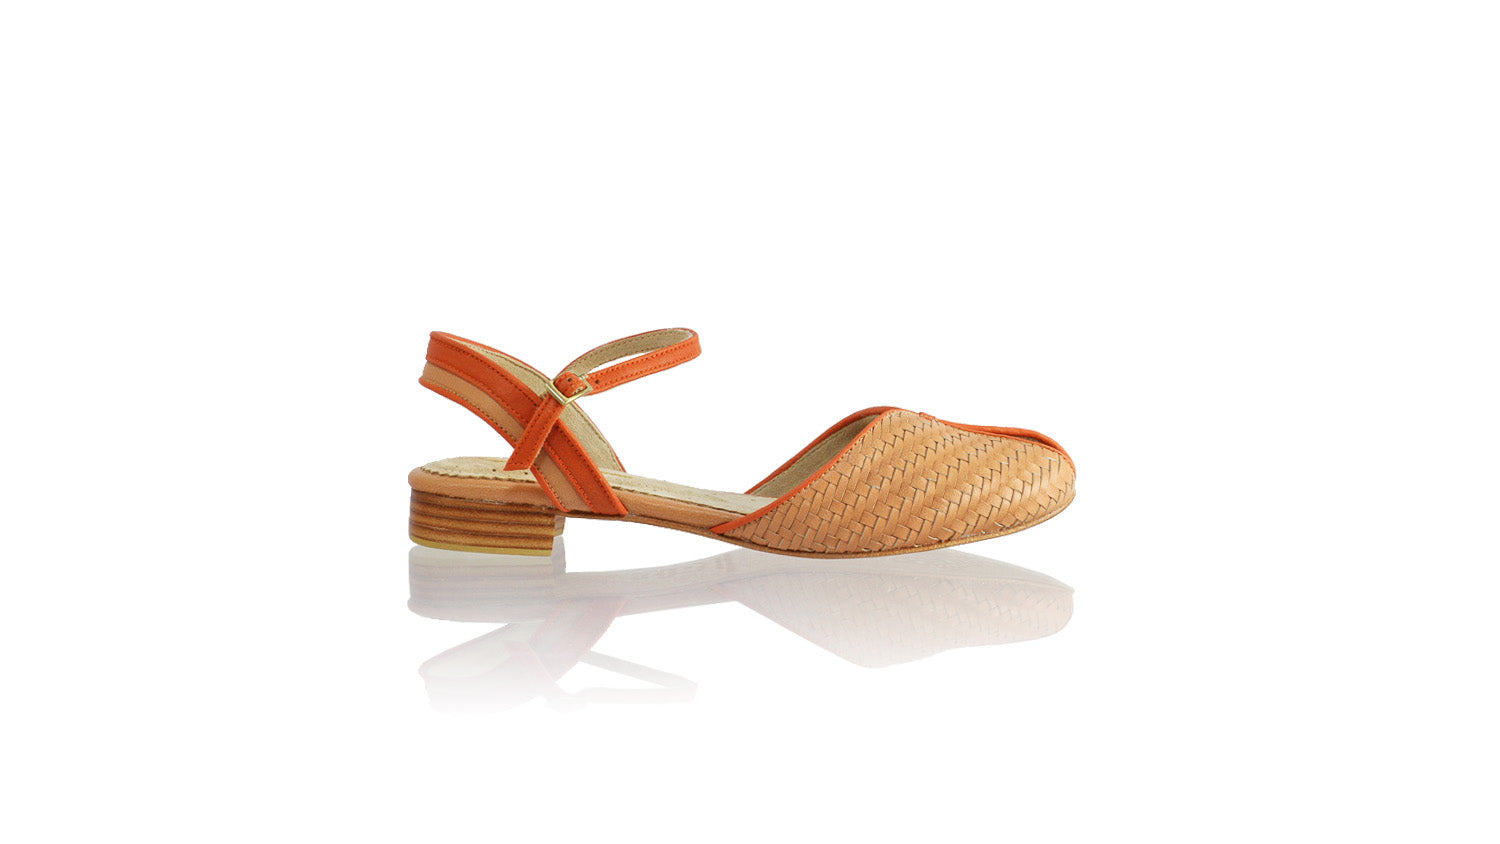 Leather-shoes-Agnes Woven 20mm Flat - Baby Pink & Orange-sandals flat-NILUH DJELANTIK-NILUH DJELANTIK